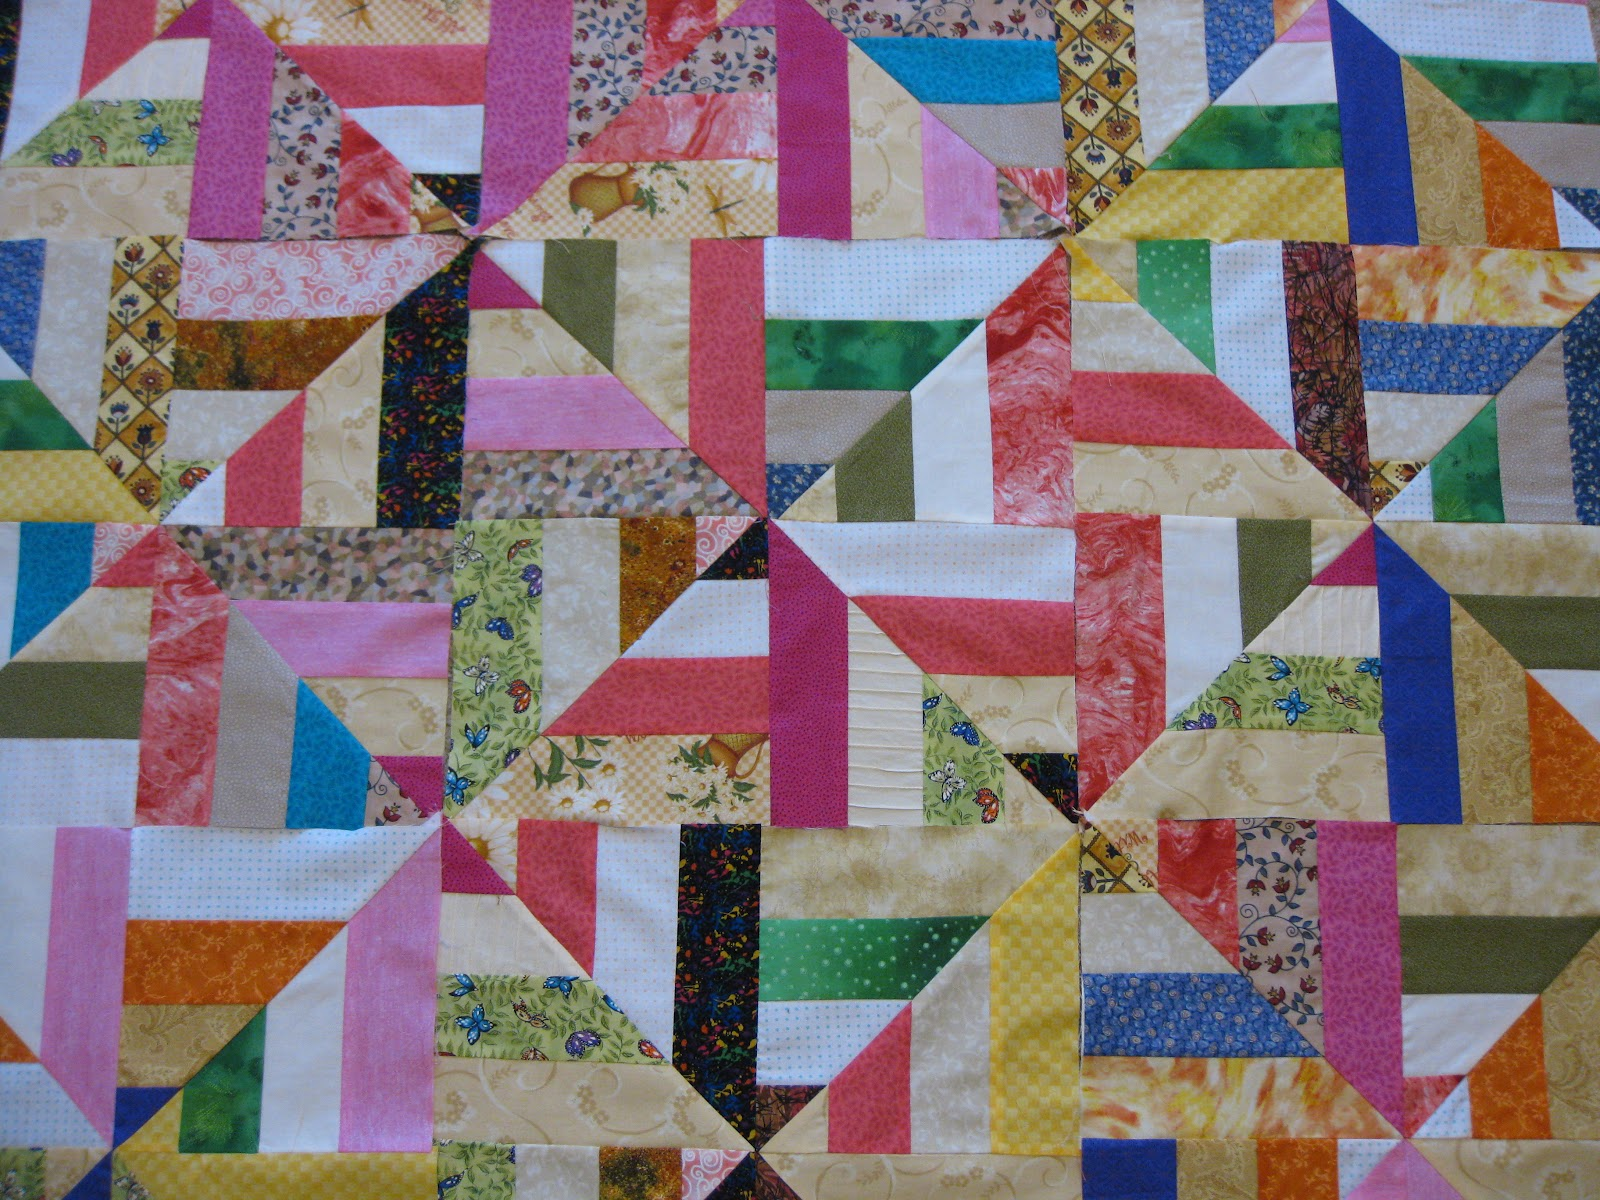 Millies Quilting Rail Fence And Strip Twist Quilt